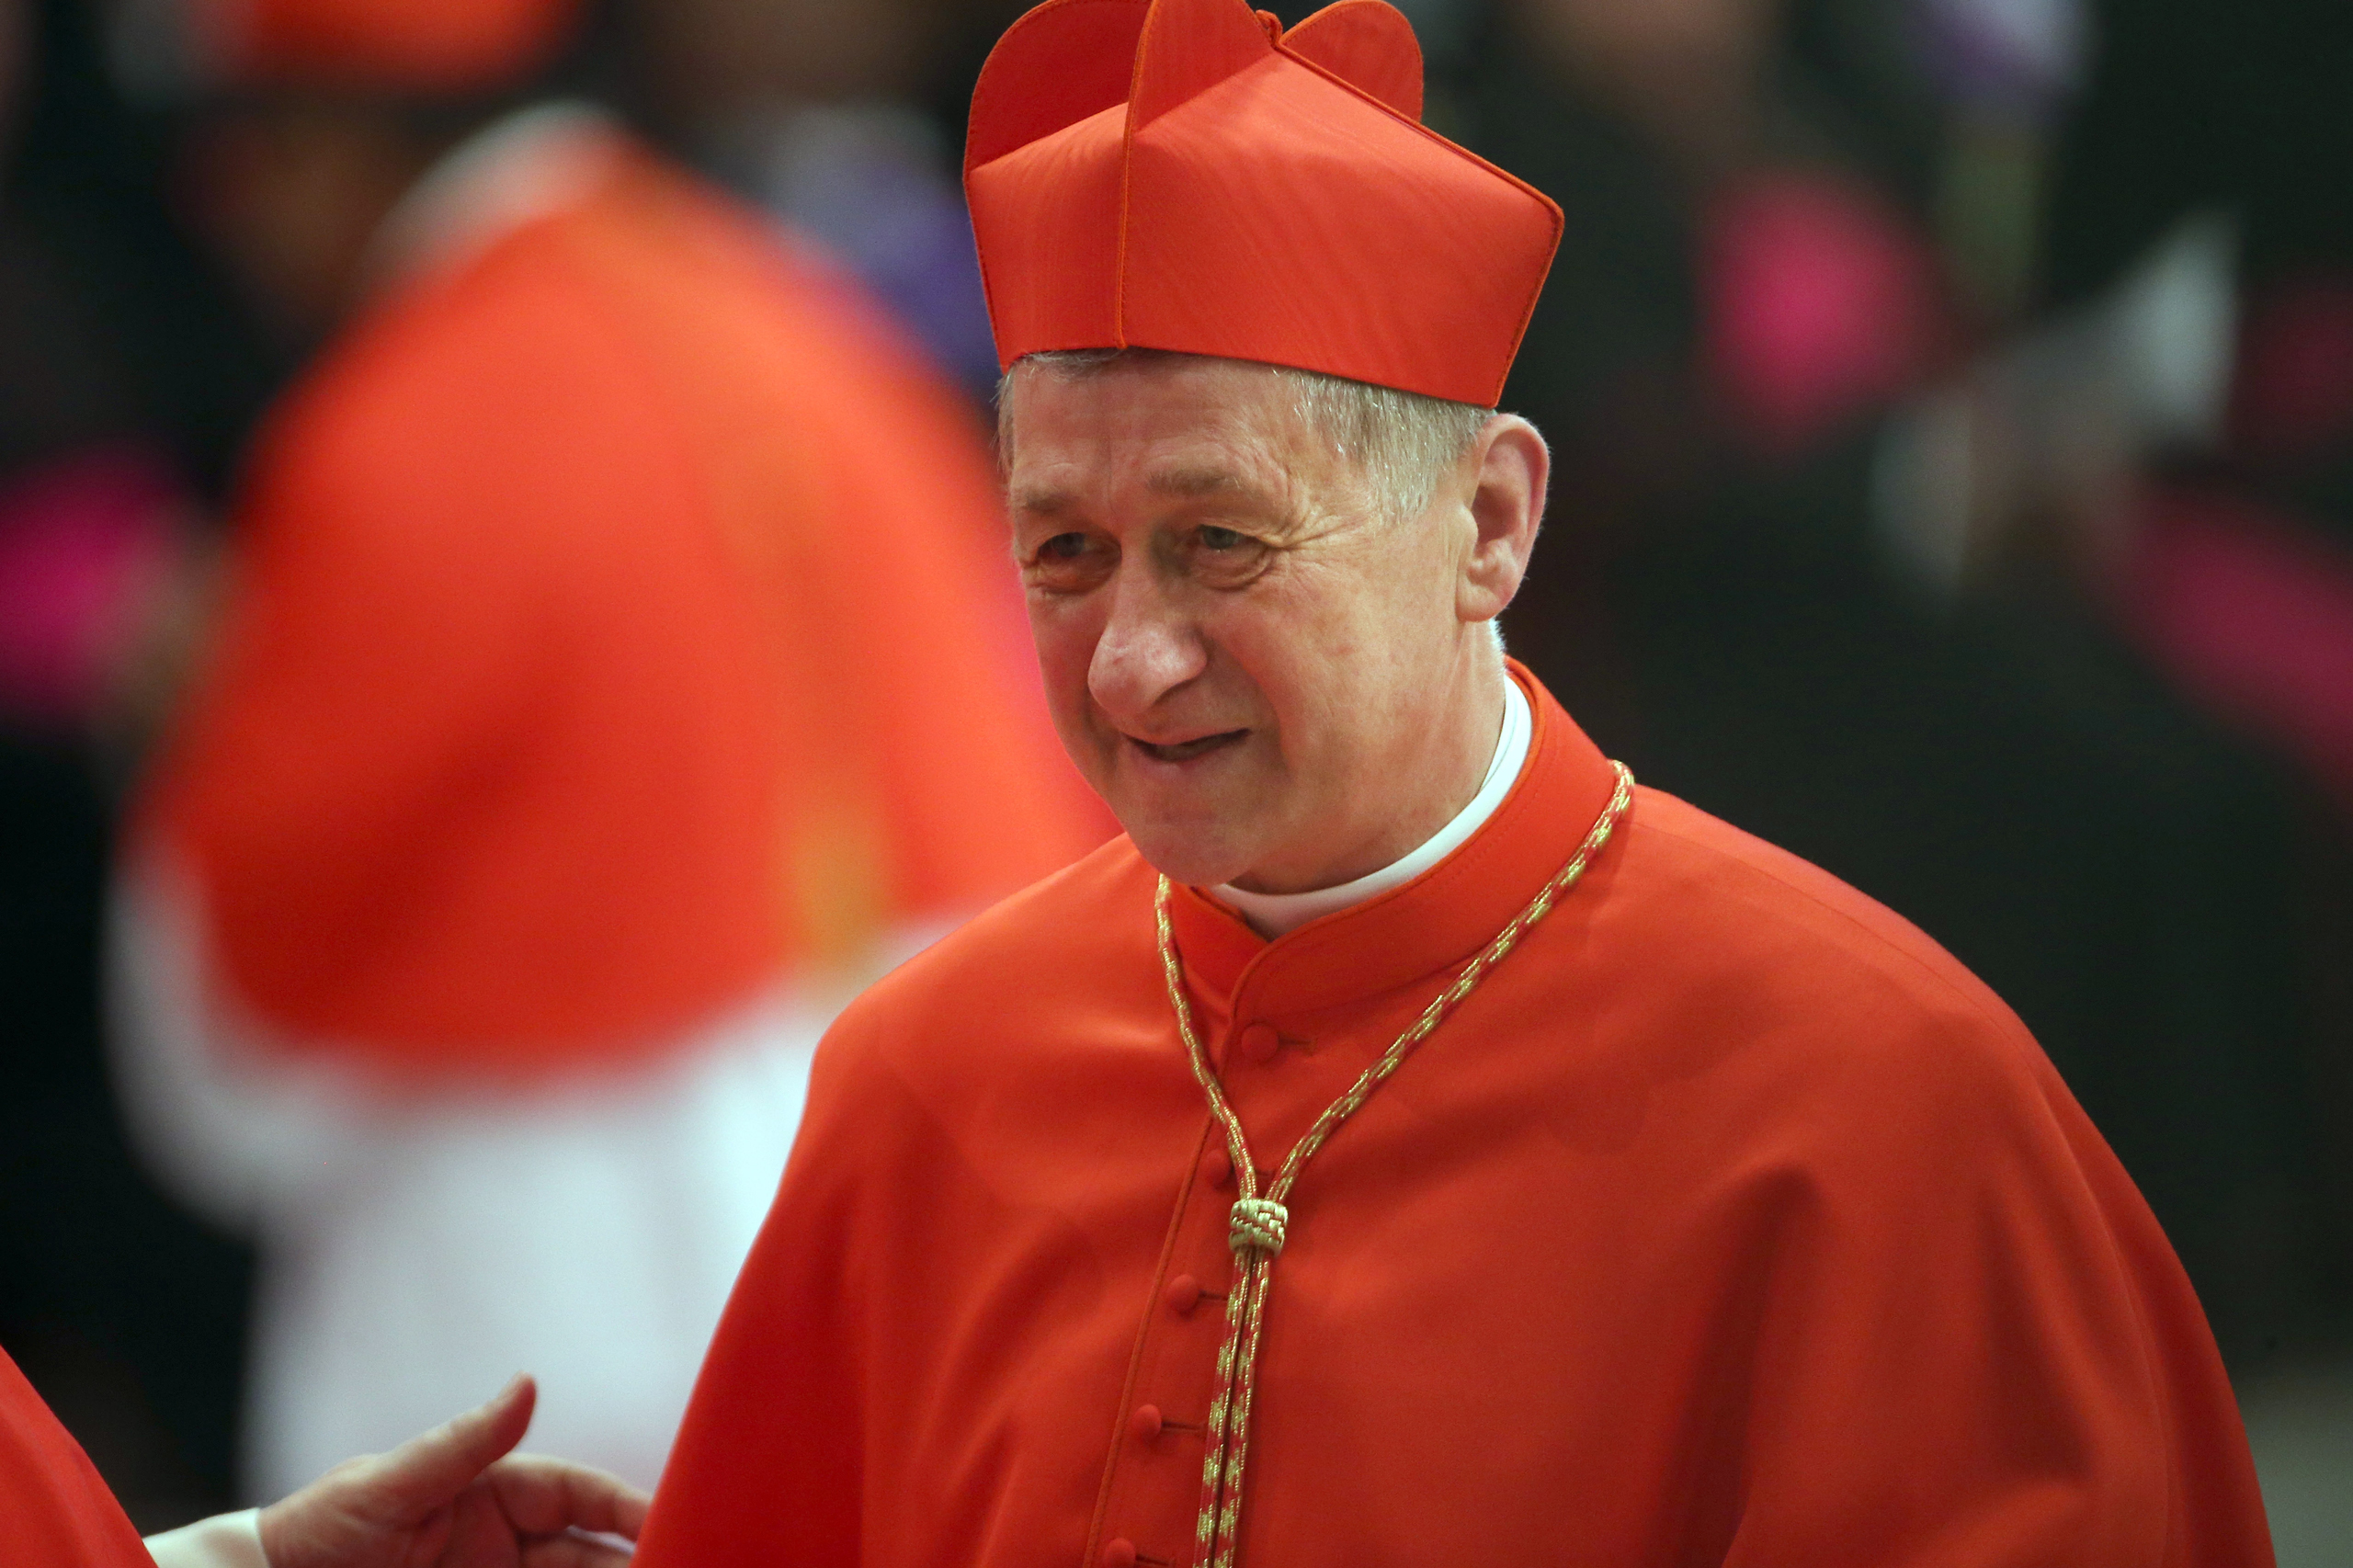 Archbishop of Chicago Blase J. Cupich receives congratulations from cardinals during the Ordinary Public Consistory celebrated by Pope Francis at St. Peter's Basilica in Vatican City on Nov. 19, 2016.